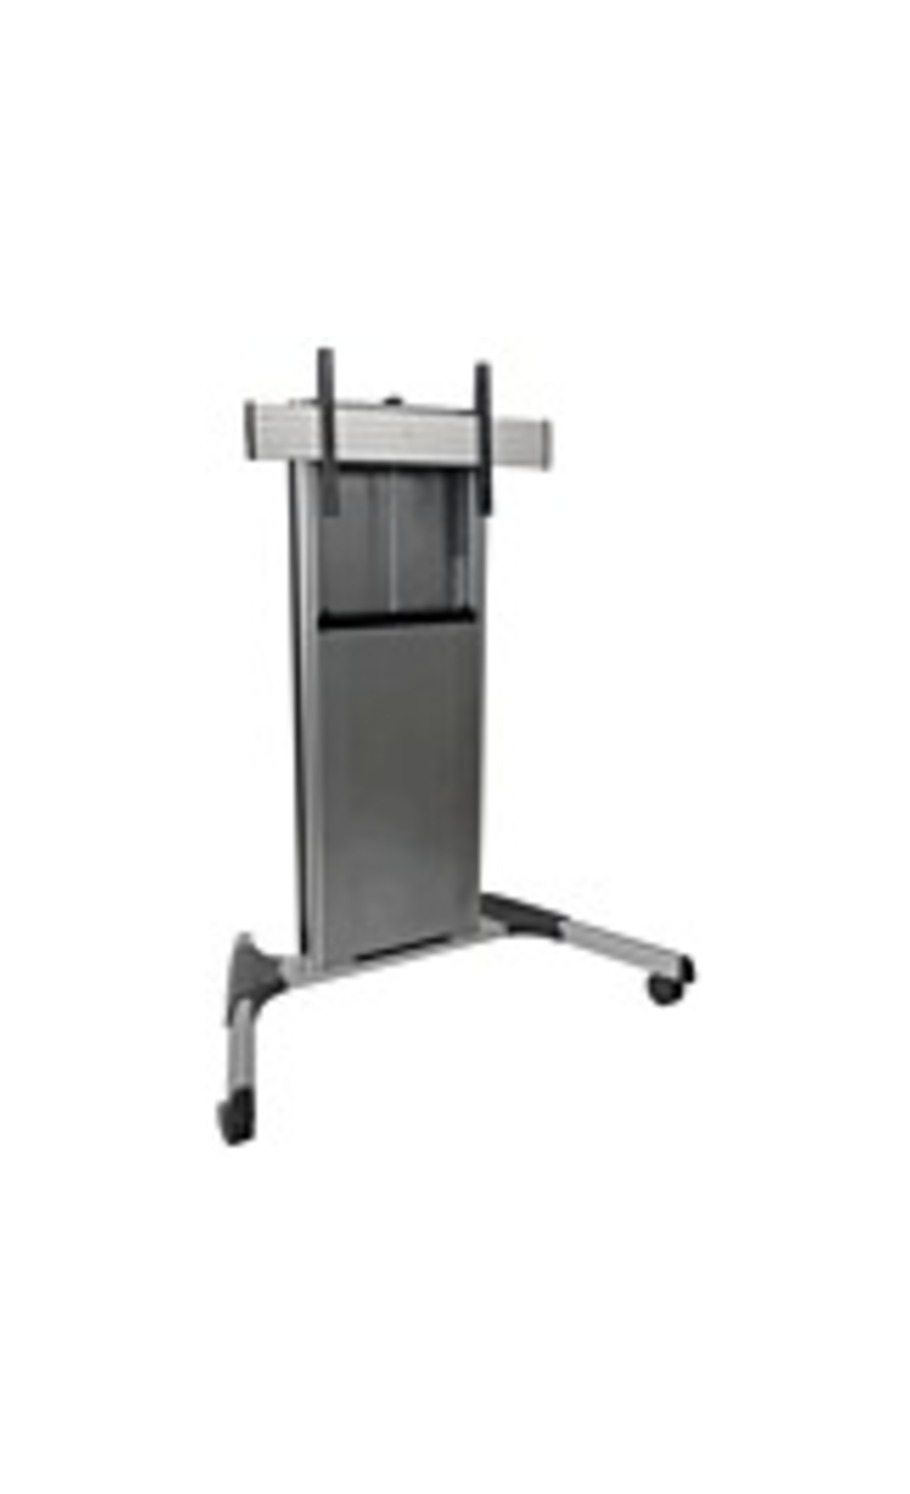 http://www.techforless.com - Chief XPA1US X-Large Fusion Display Stand – 299.83 lb Load Capacity – Silver 1416.49 USD